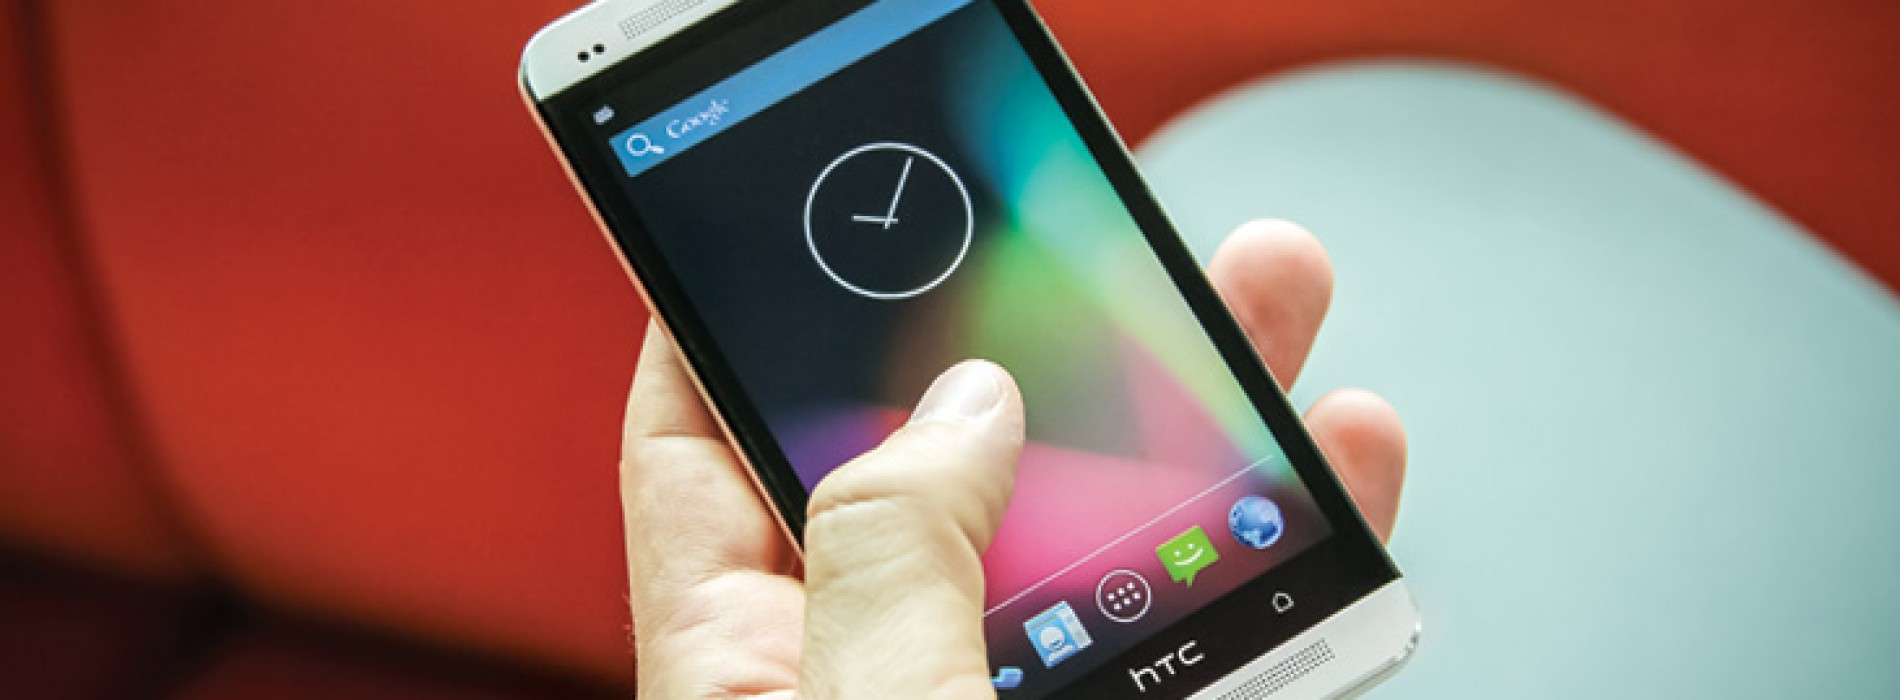 Sense 6.0 for HTC One (M7) begins its rollout in Europe